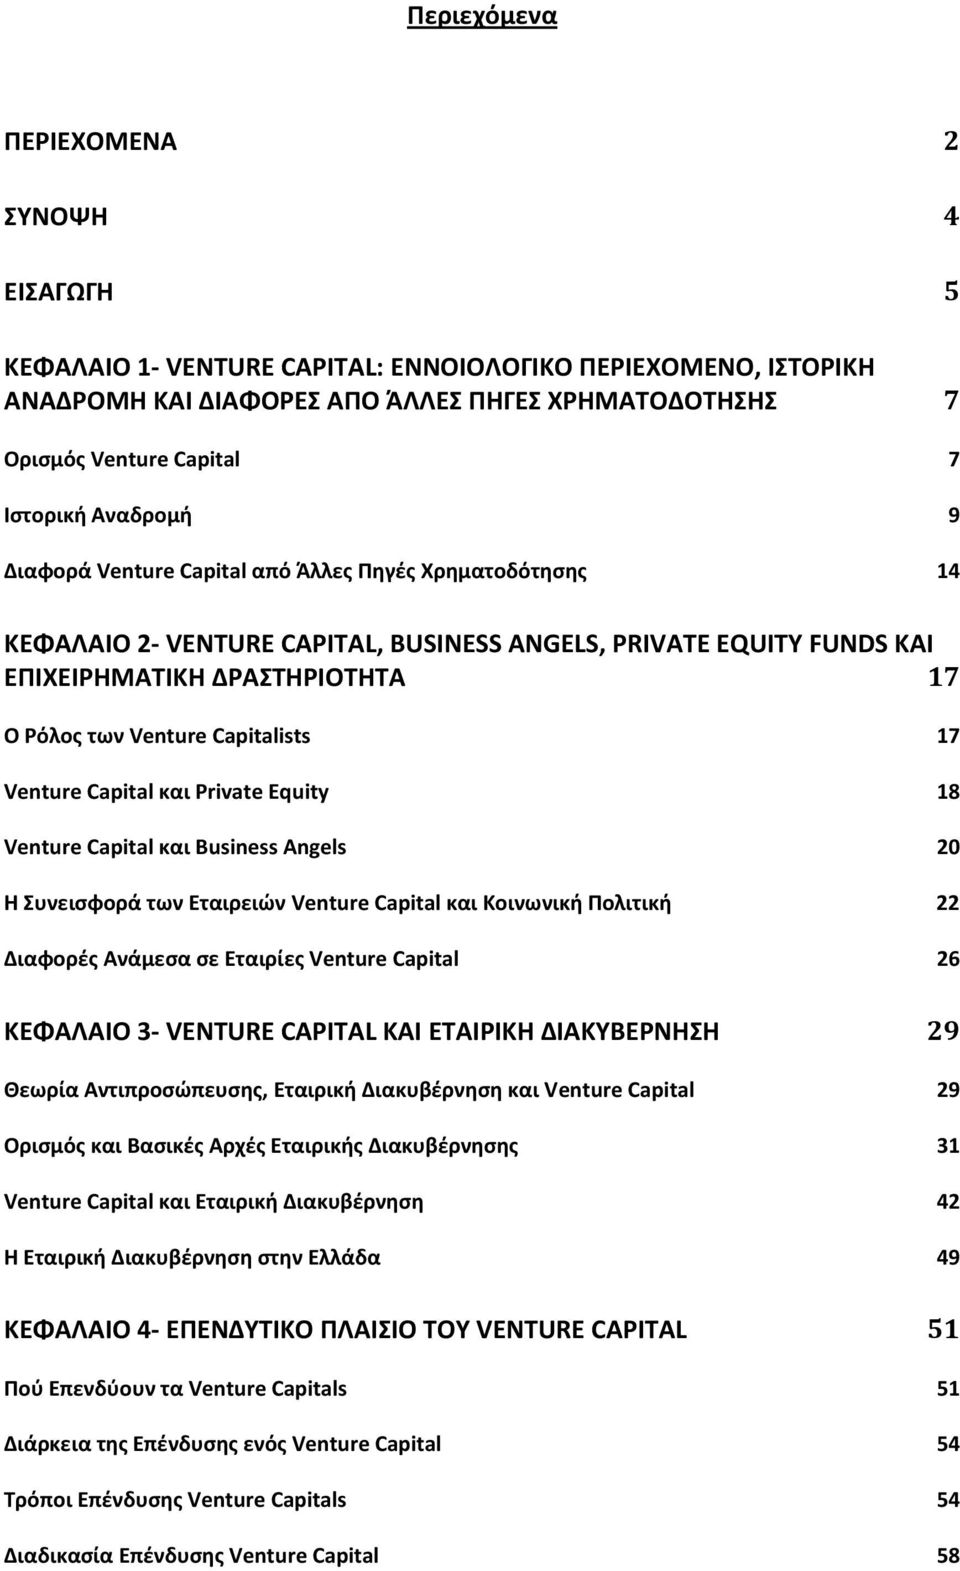 Capitalists 17 Venture Capital και Private Equity 18 Venture Capital και Business Angels 20 Η Συνεισφορά των Εταιρειών Venture Capital και Κοινωνική Πολιτική 22 Διαφορές Ανάμεσα σε Εταιρίες Venture